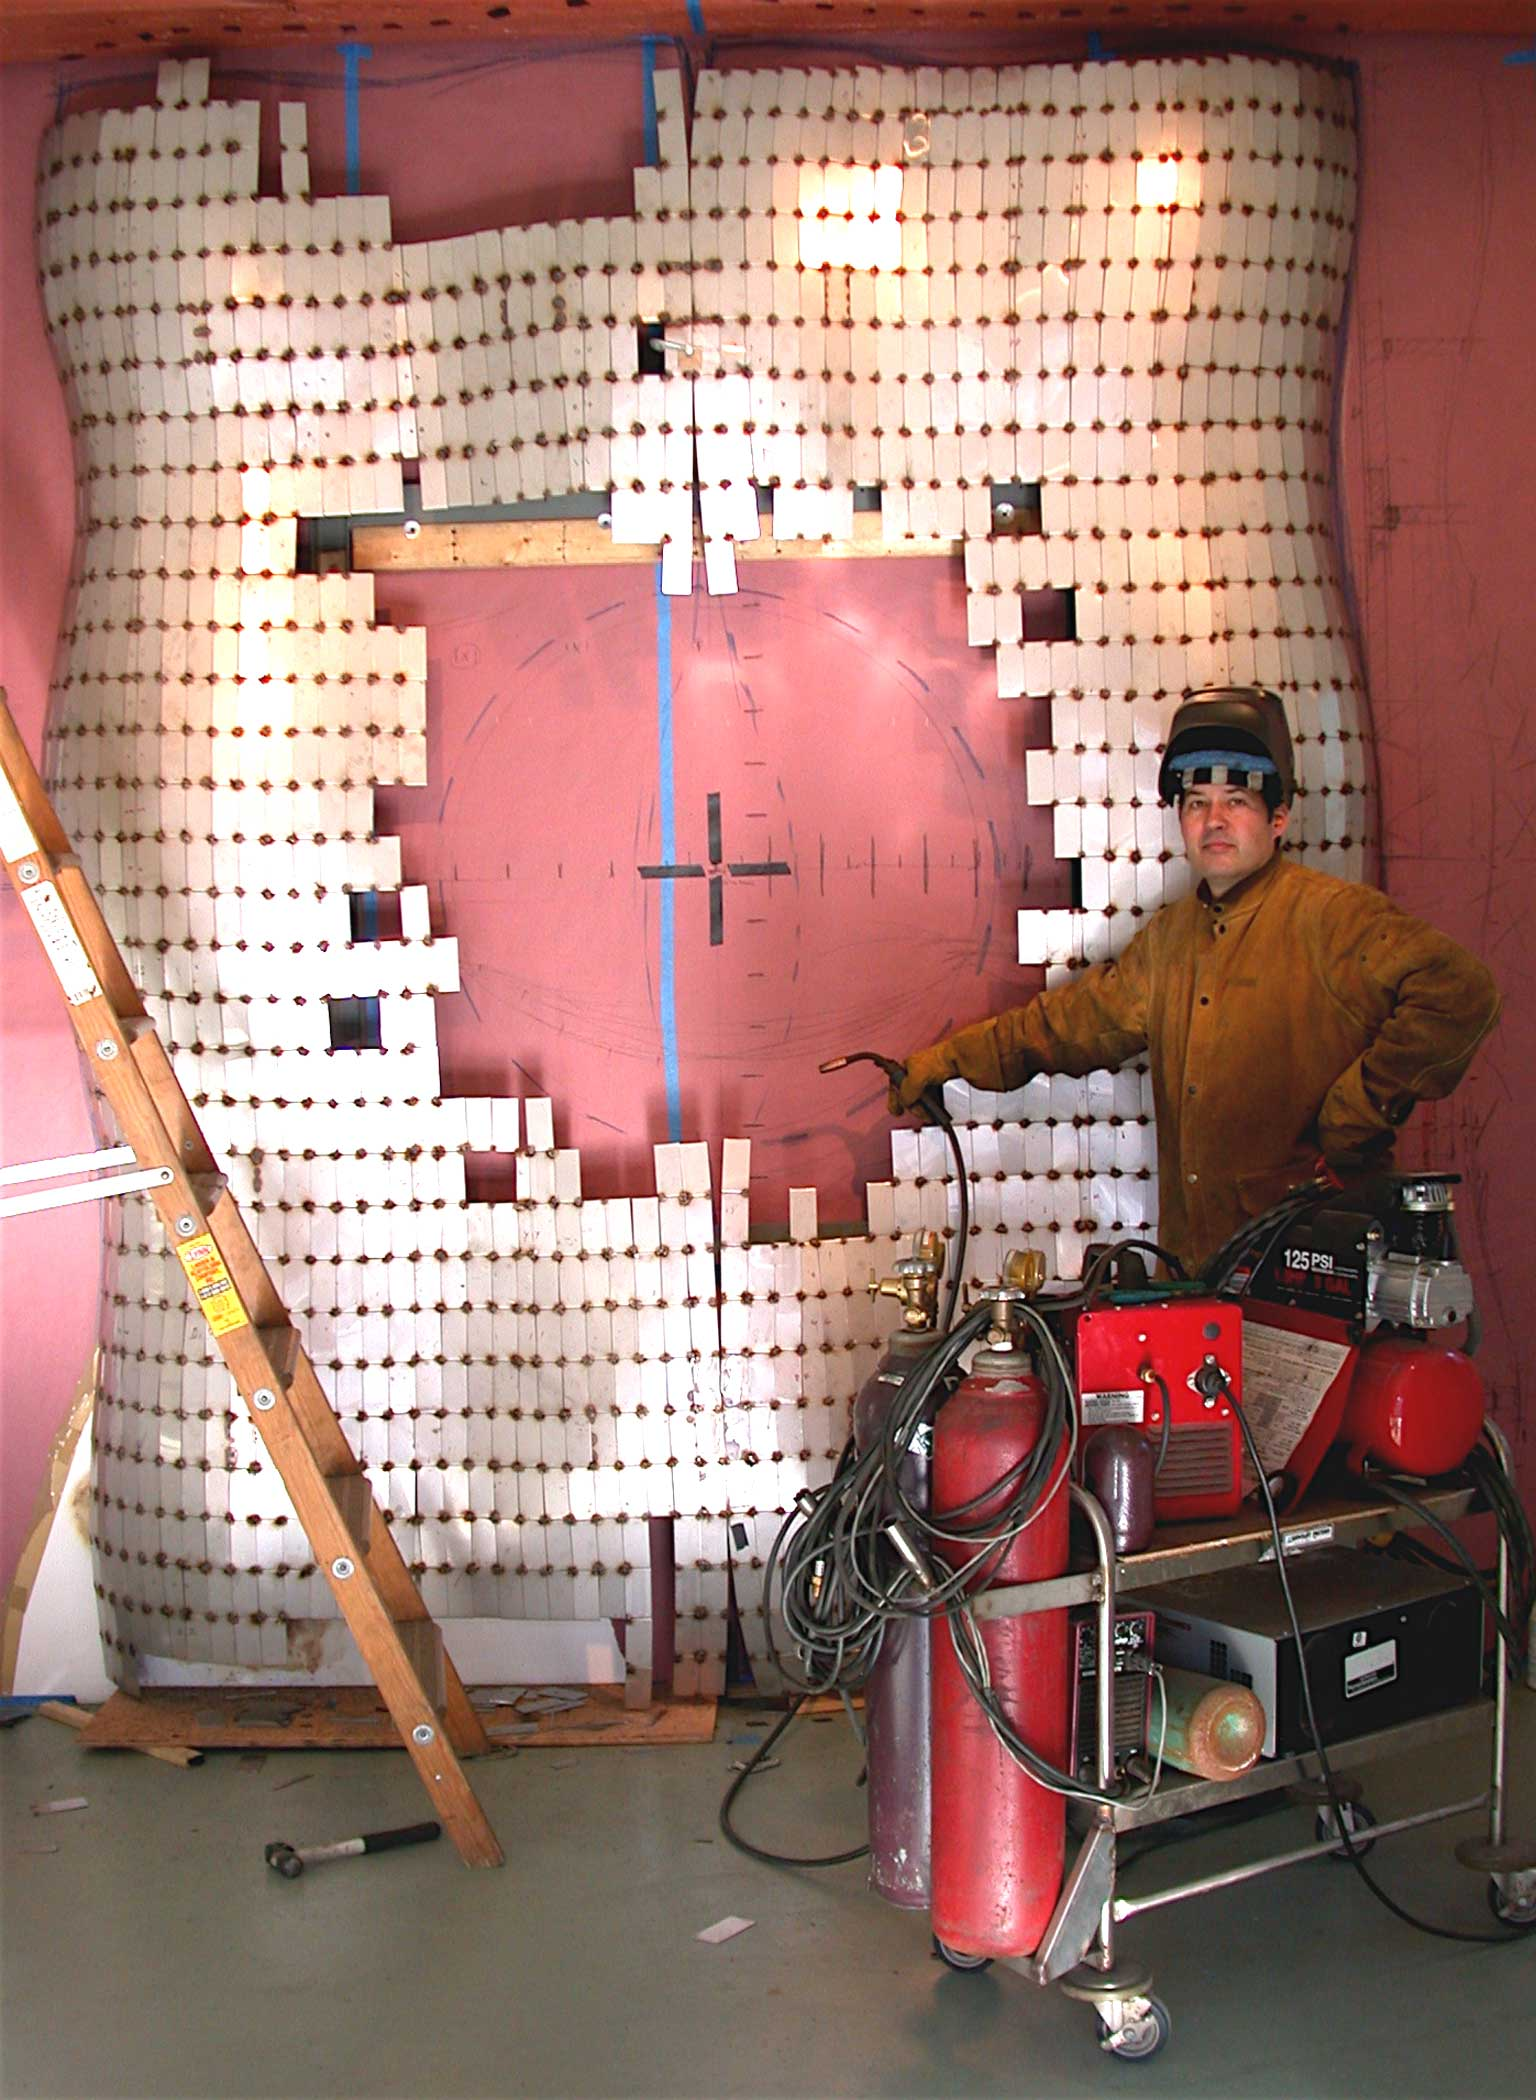 Peter Diepenbrock fabricating a large stainless steel sculptural wall piece